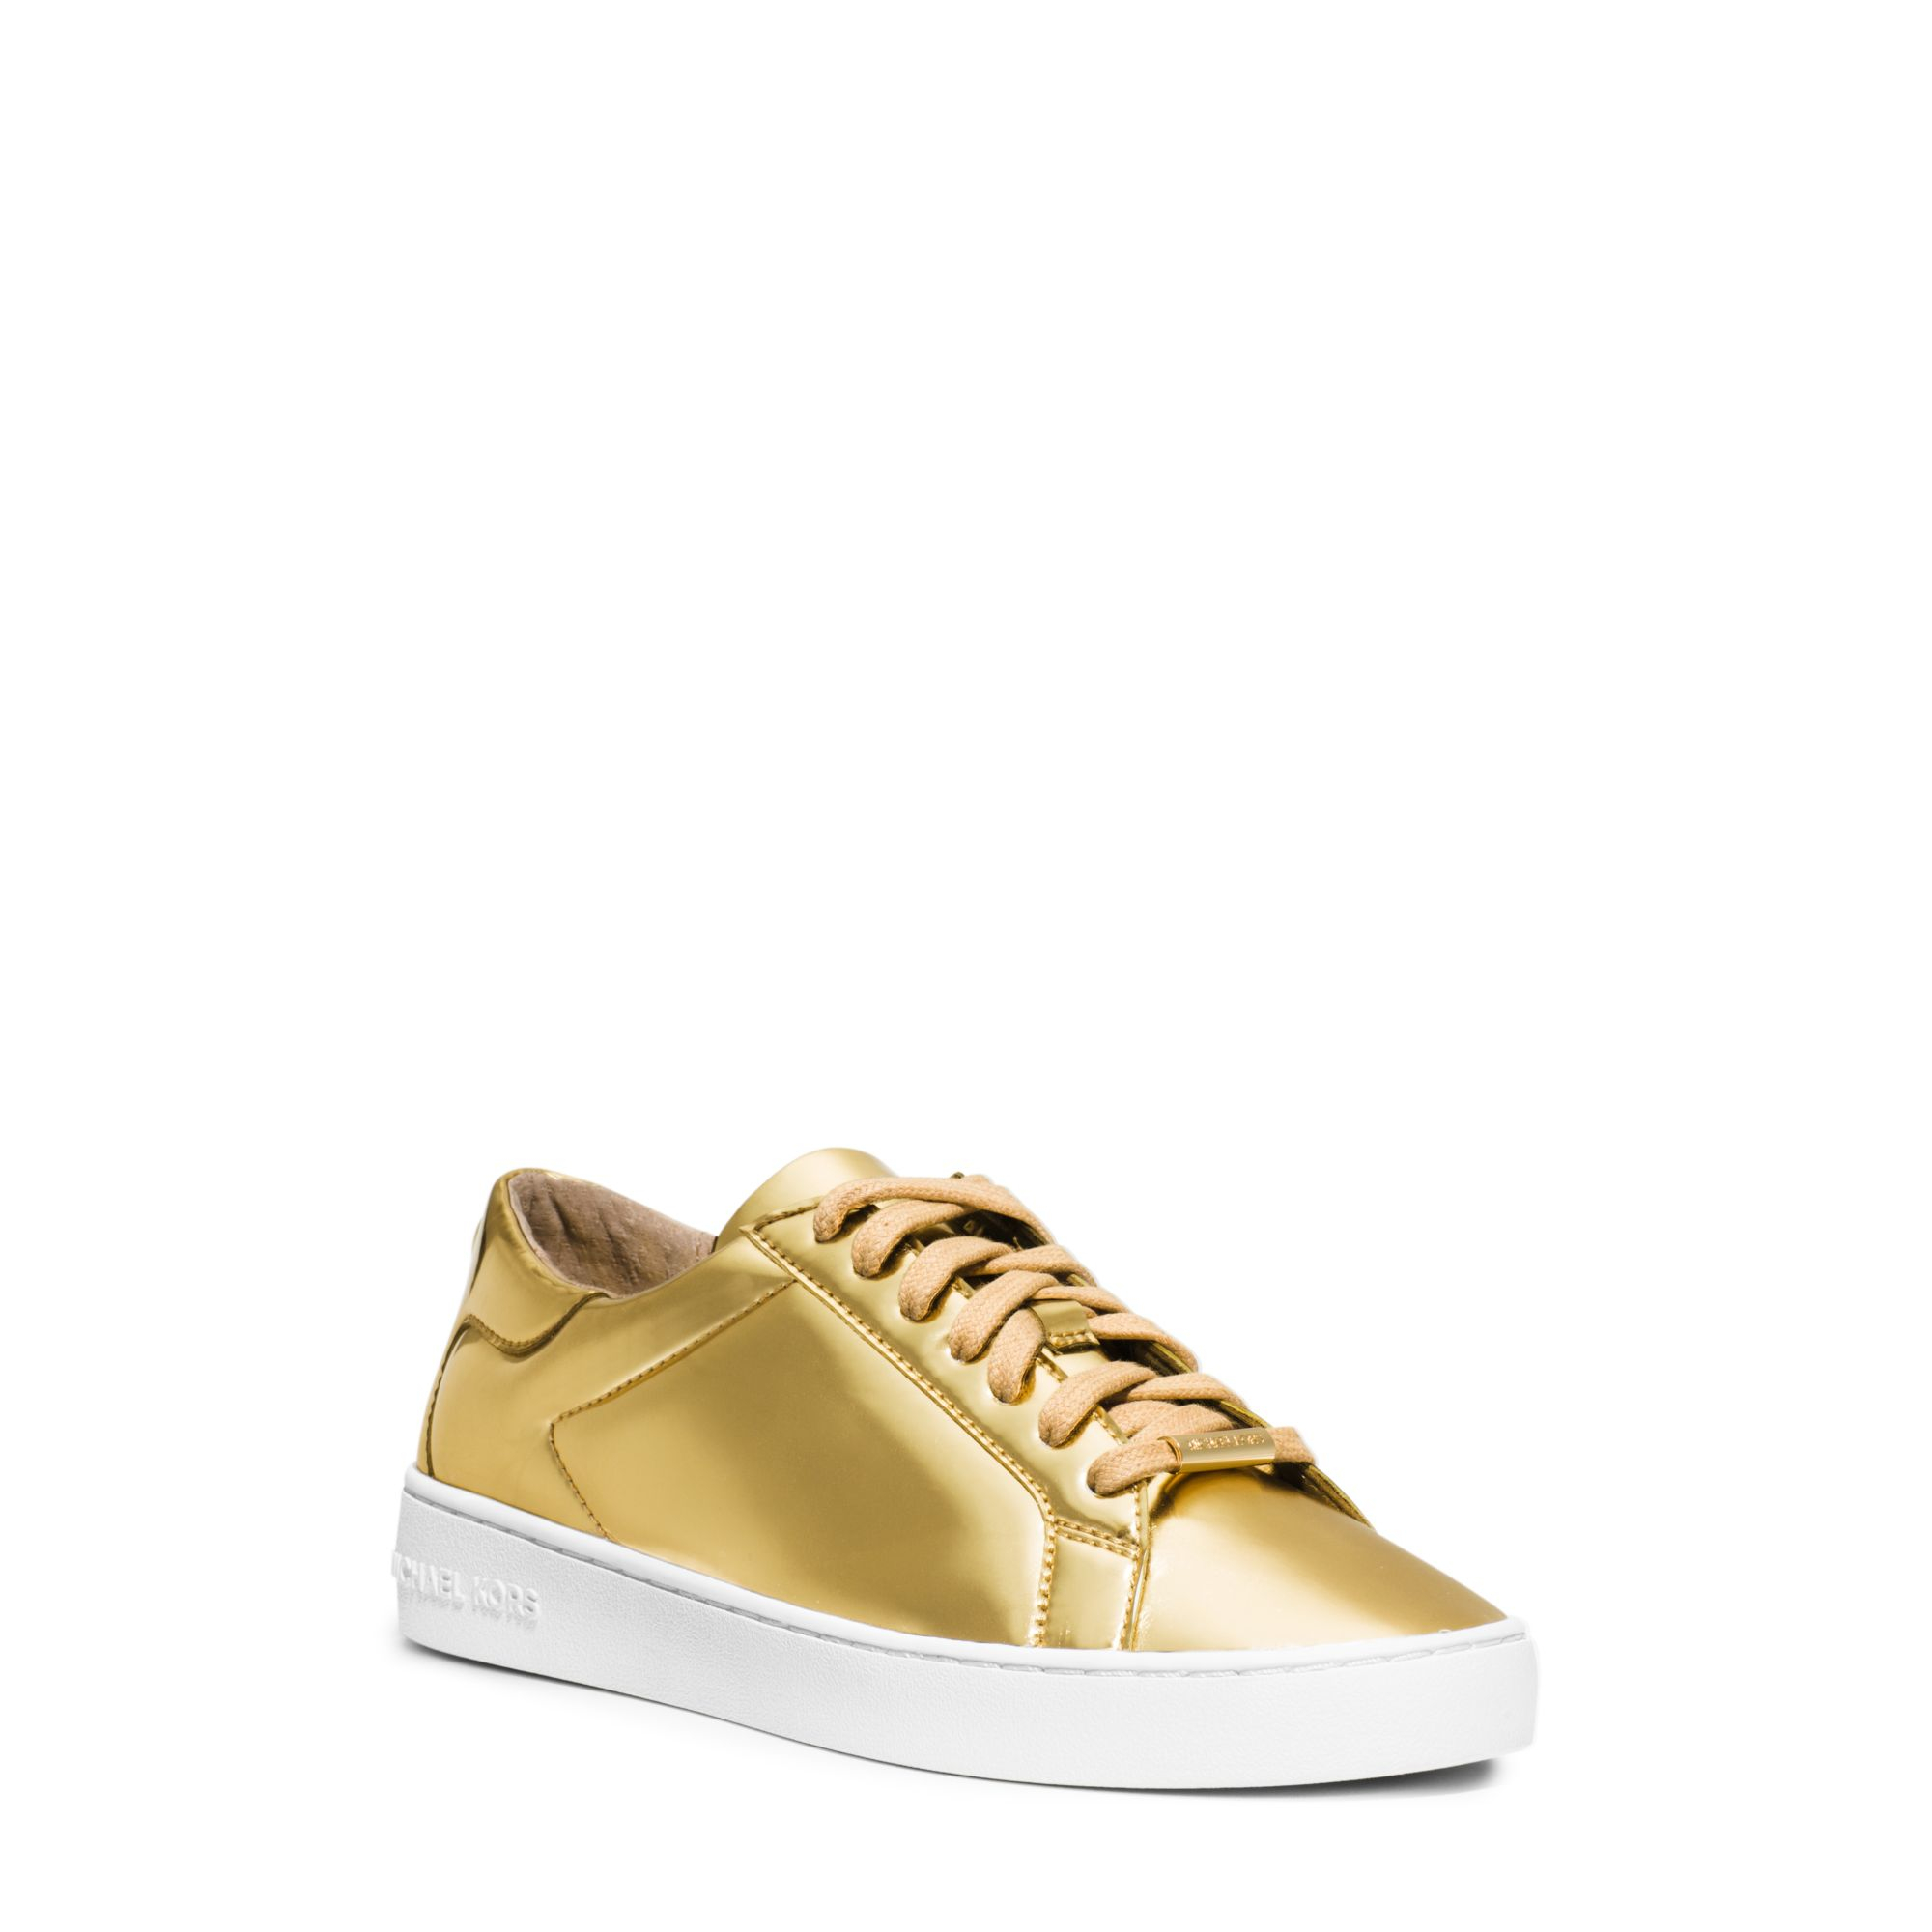 michael kors ruth metallic sneaker in metallic lyst. Black Bedroom Furniture Sets. Home Design Ideas